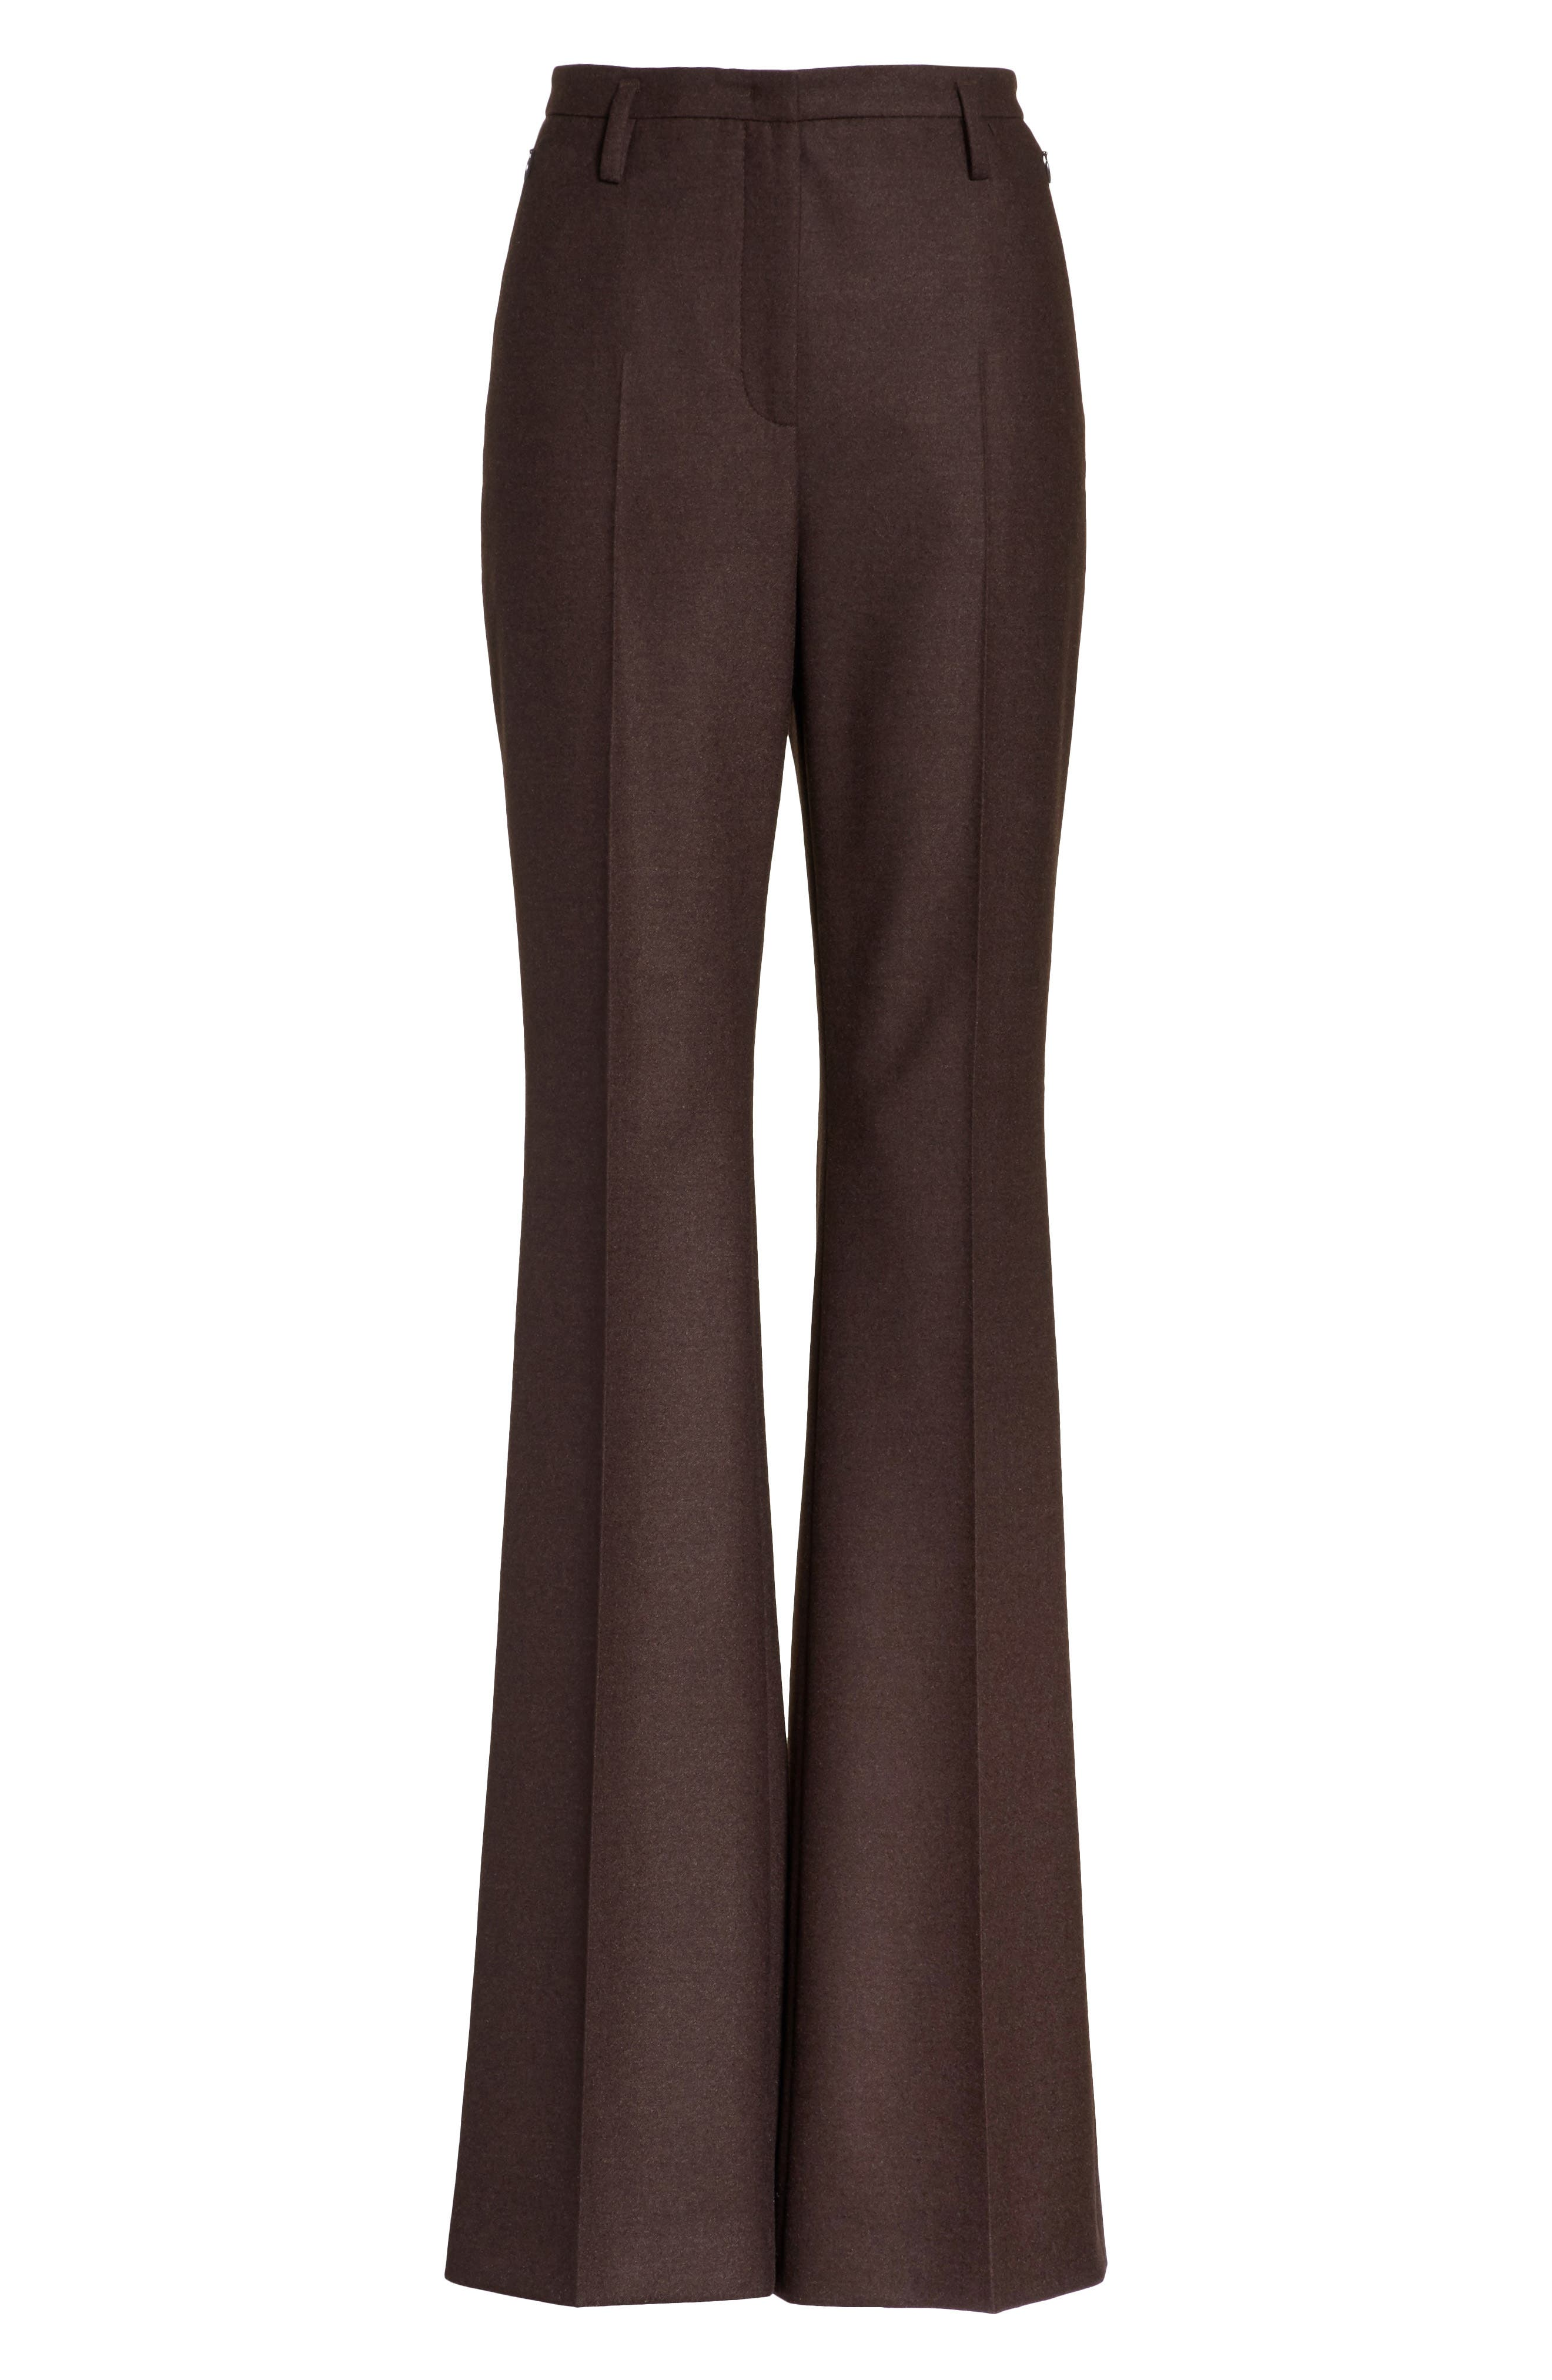 Farrah Stretch Wool Flare Pants,                             Alternate thumbnail 6, color,                             200